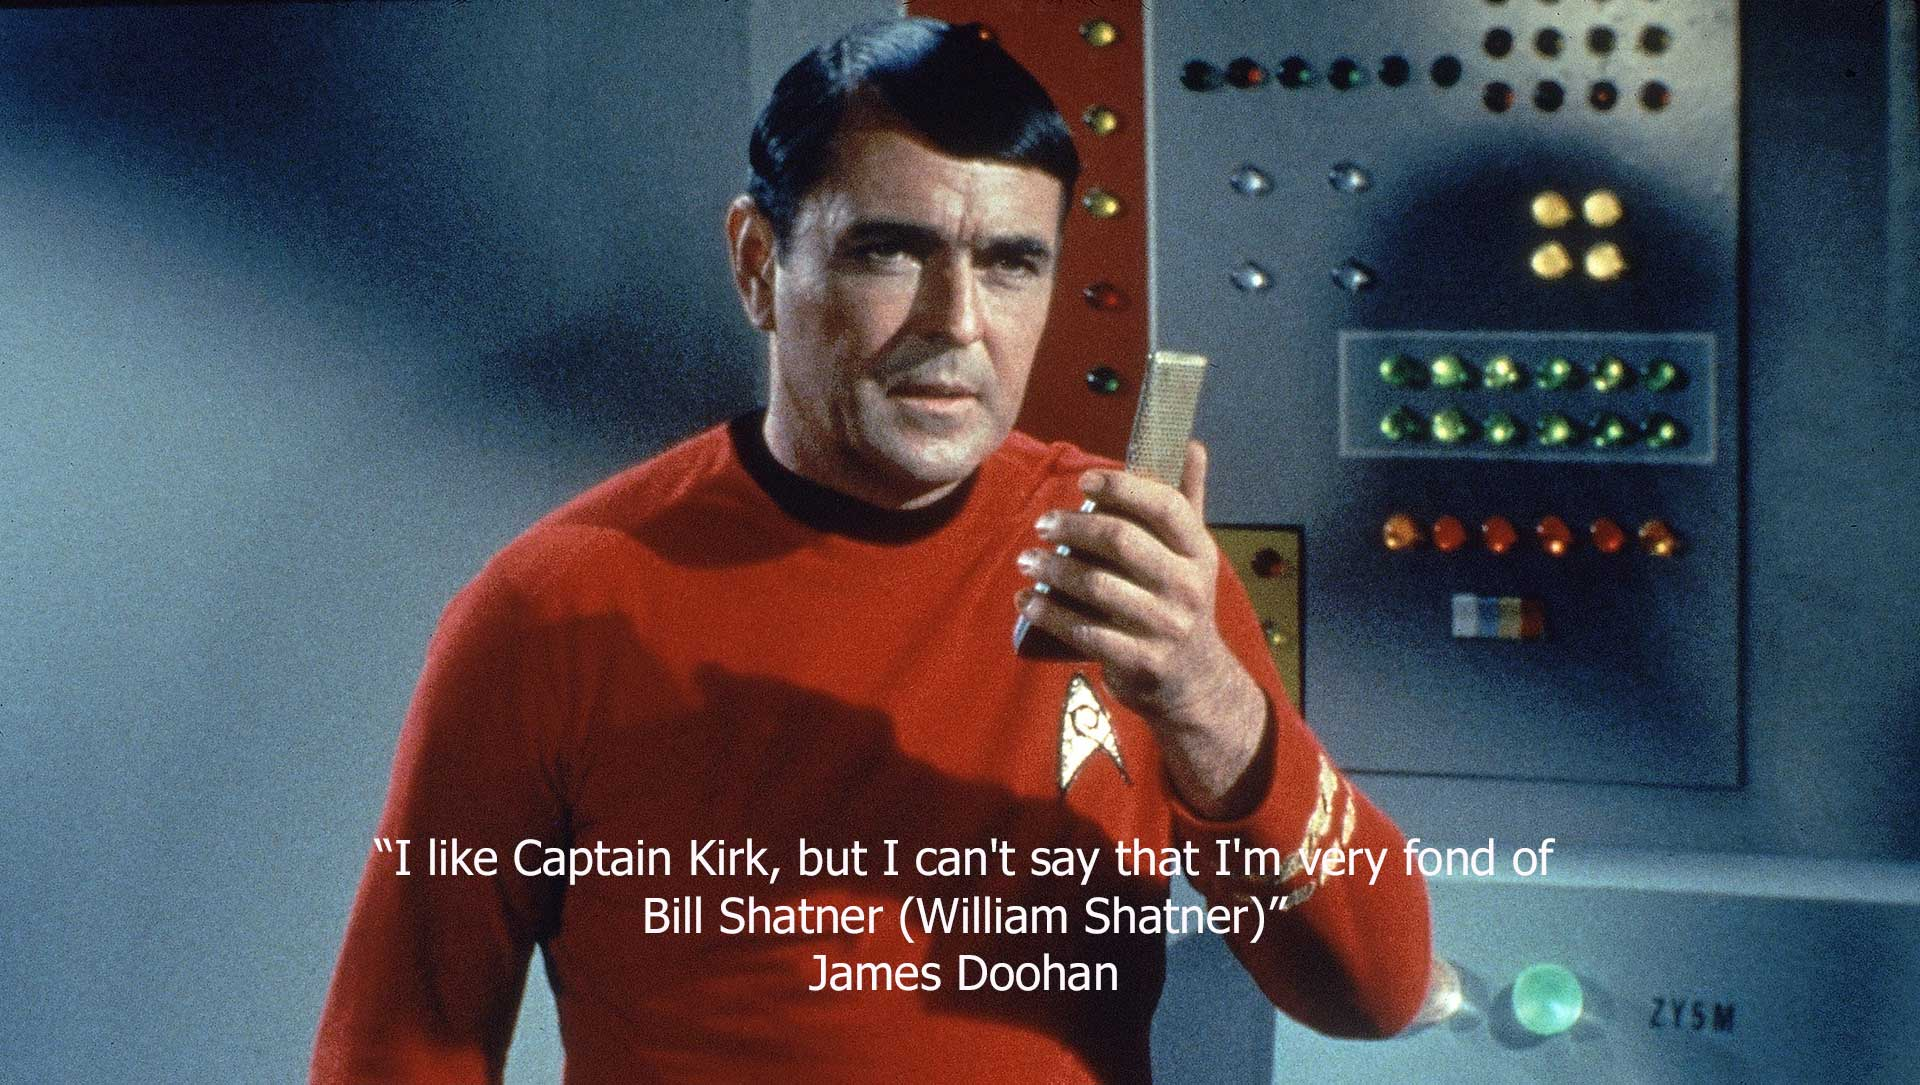 """""""I like Captain Kirk, but I can't say that I'm very fond of Bill Shatner (William Shatner)."""" ~ James Doohan [1920x1085]"""